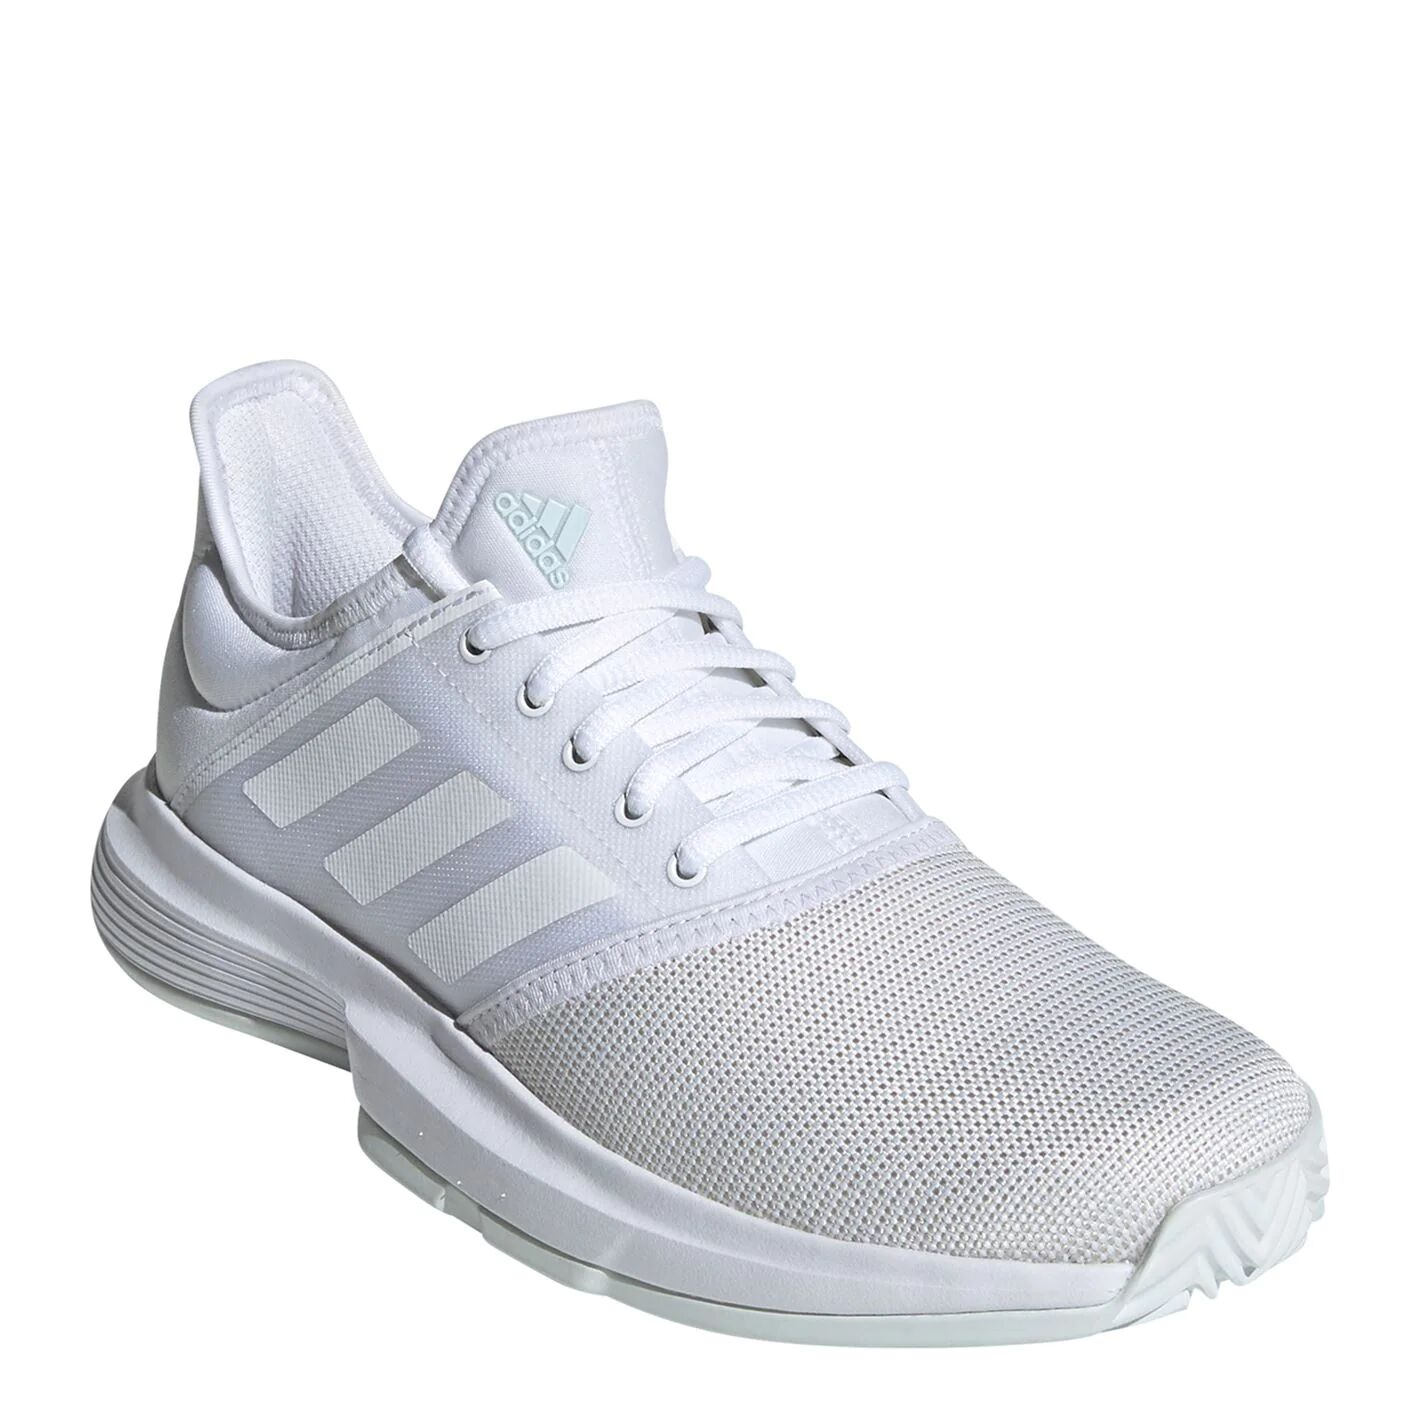 Adidas GameCourt Women's Tennis Παπούτσια